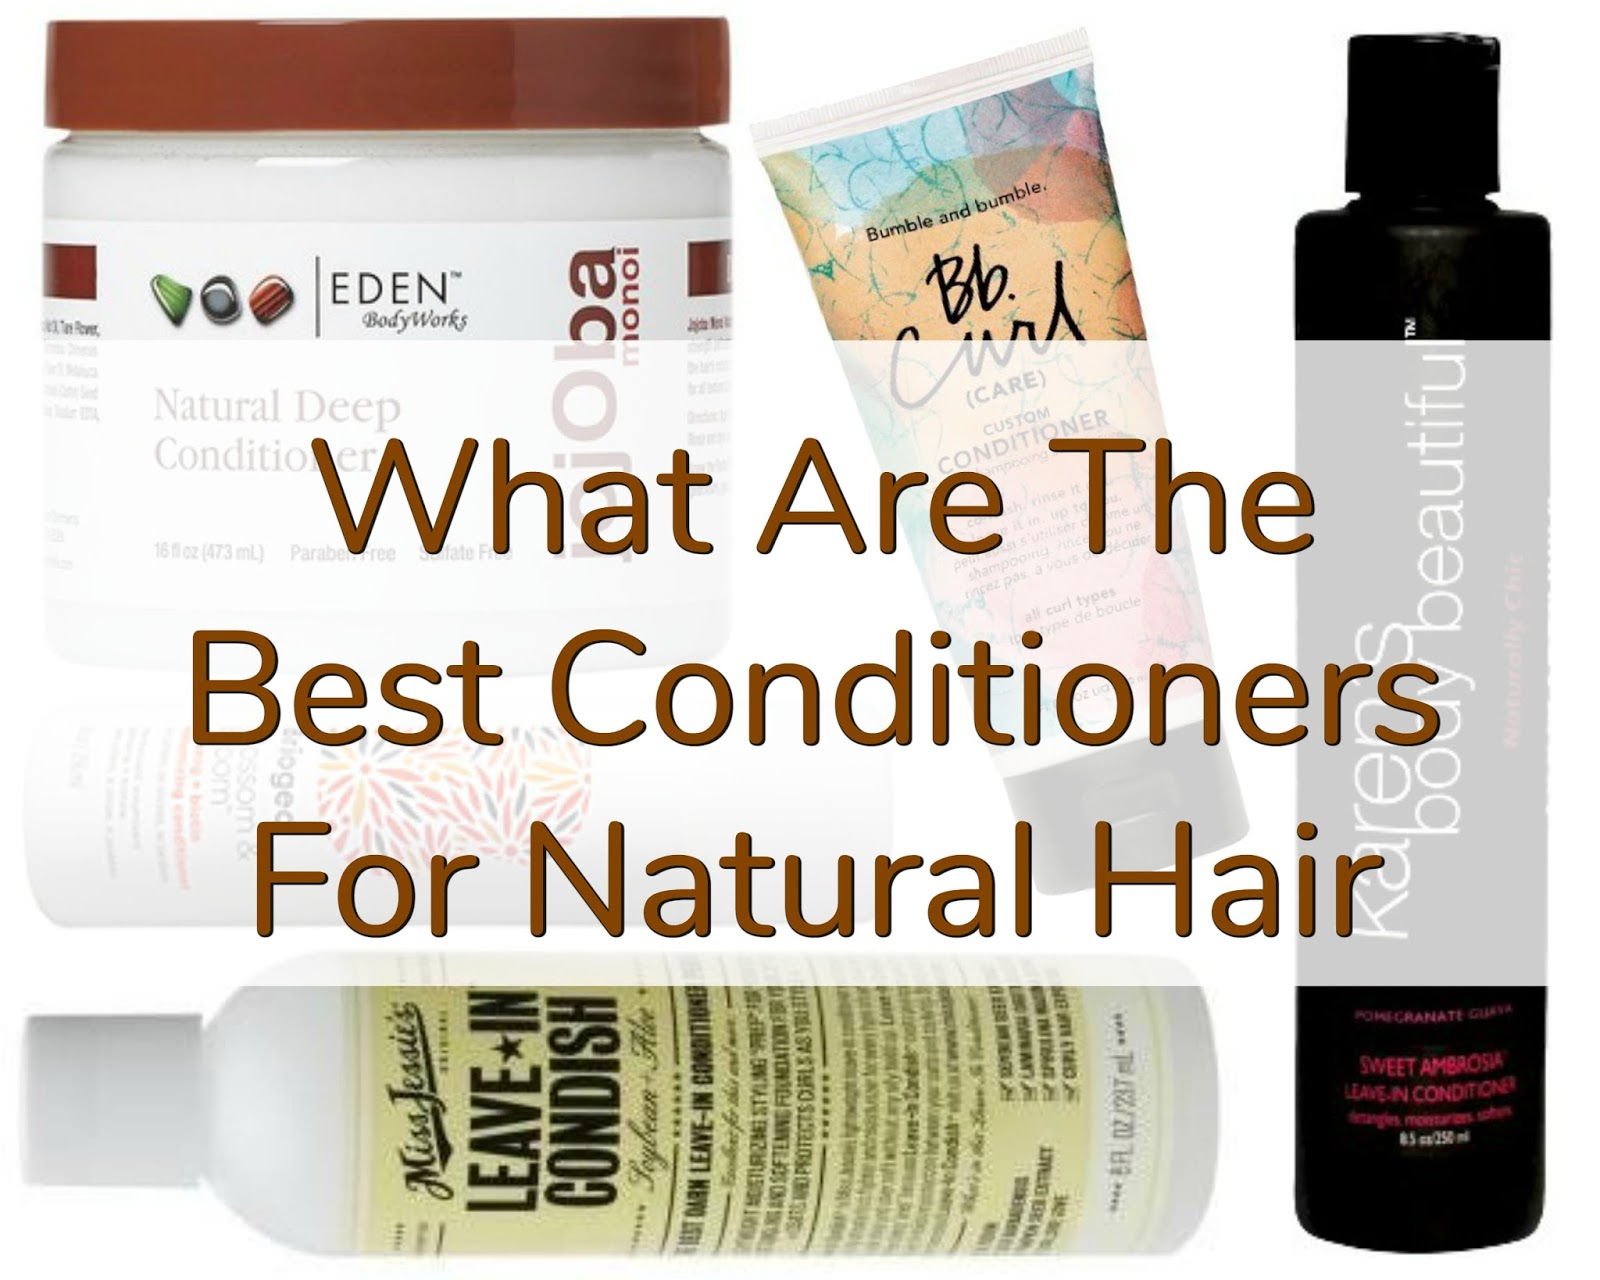 What Are The Best Conditioners For Natural Hair